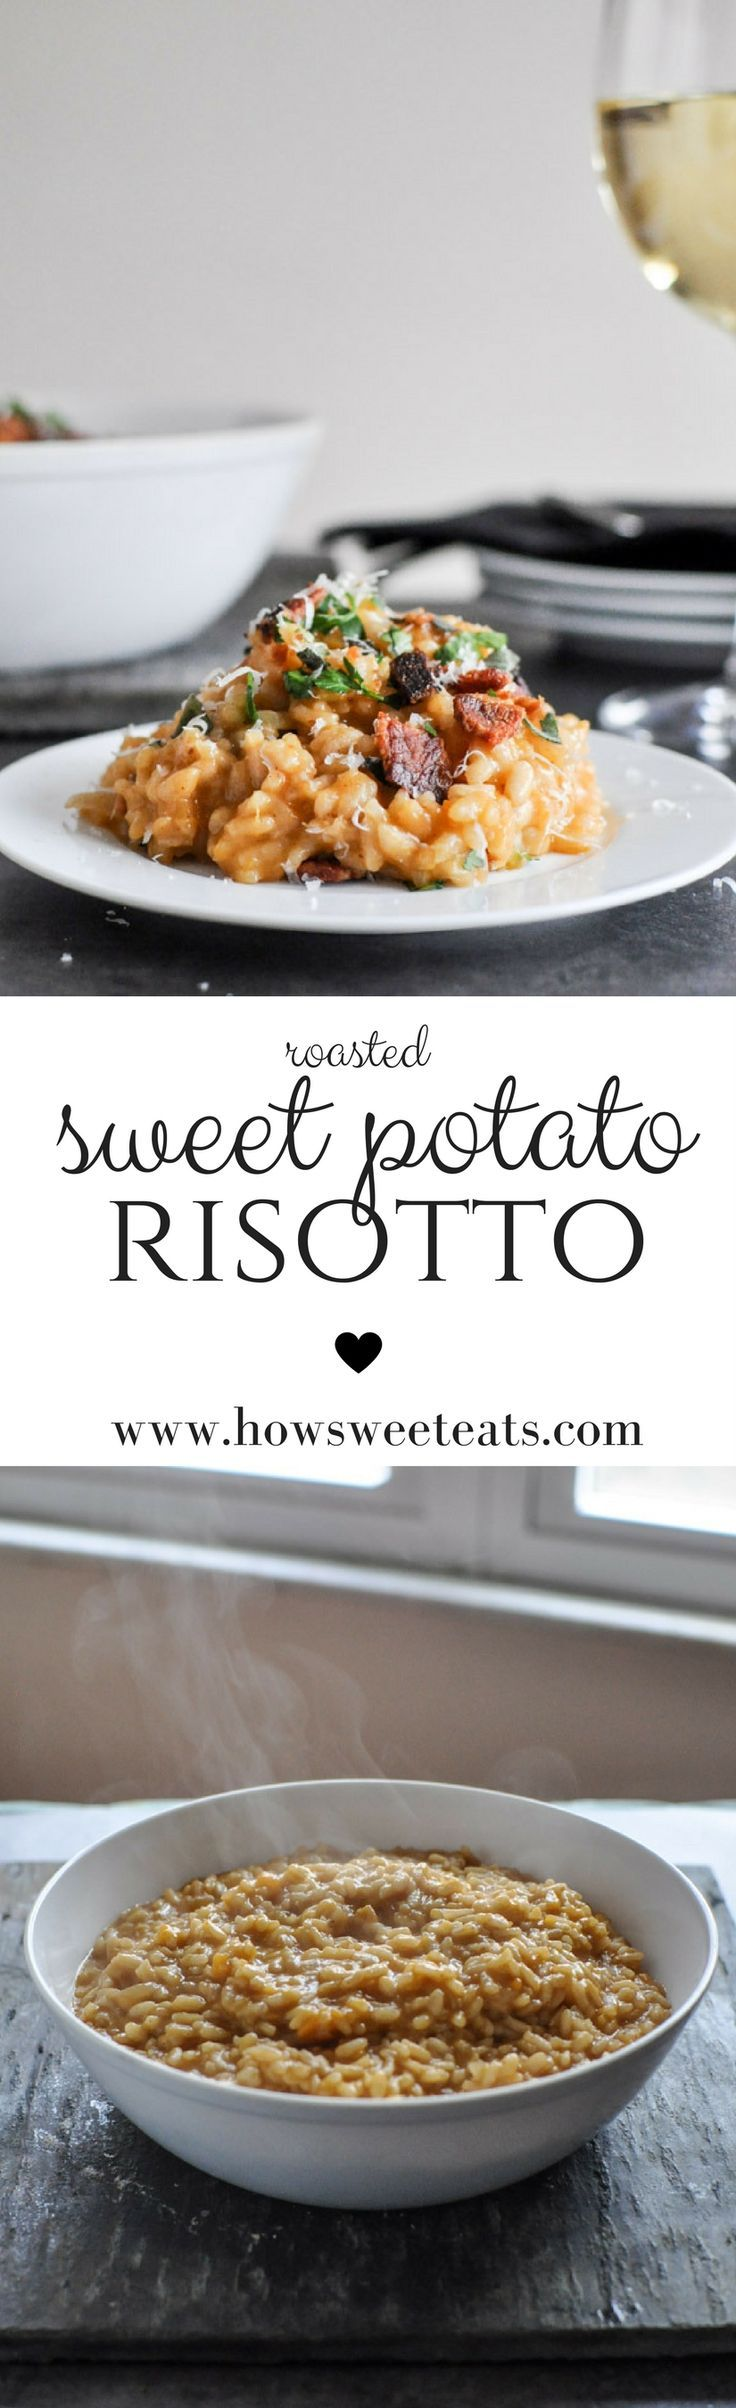 Roasted Sweet Potato Risotto by @howsweeteats I howsweeteats.com